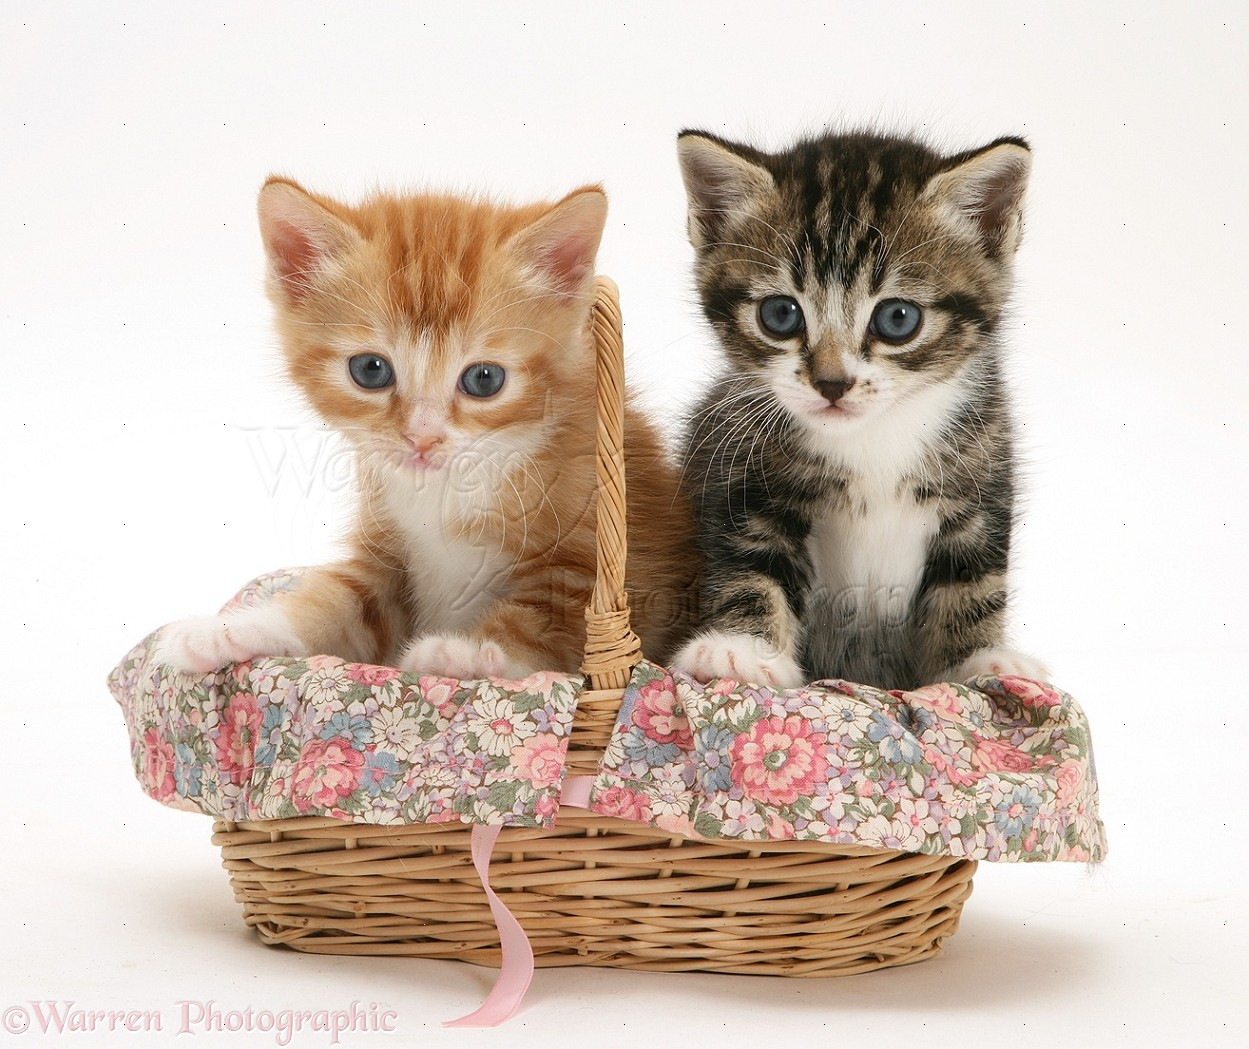 Tabby and ginger kittens in a wicker basket photo WP25667 Tabby Cat